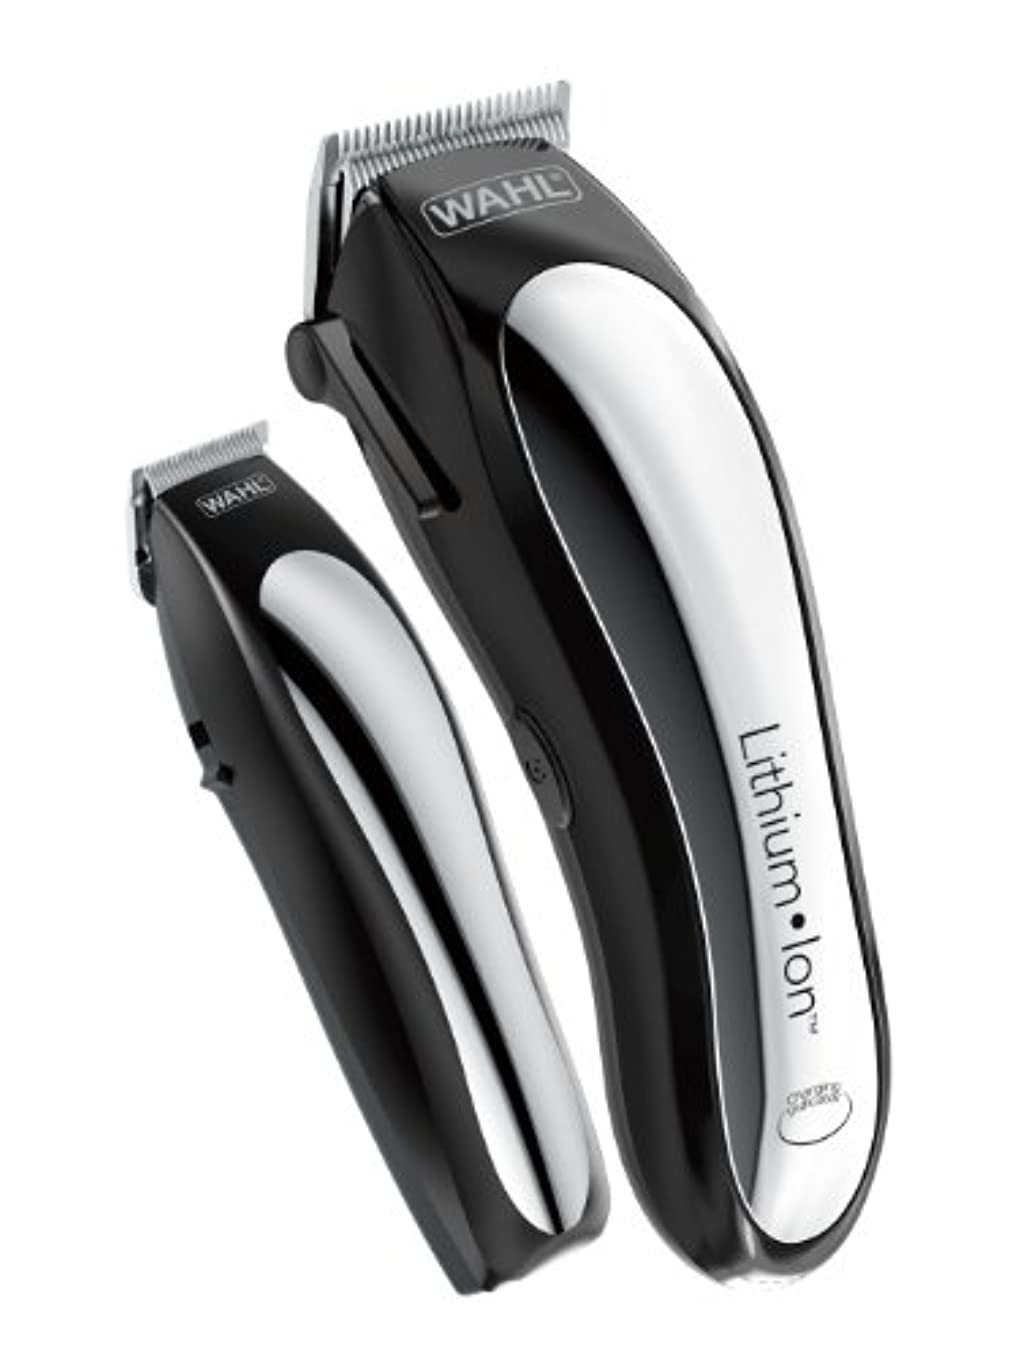 悪性より良い対角線Wahl Clipper Lithium Ion Cordless Rechargeable Hair Clippers and Trimmers for men,Hair Cutting Kit with 10 Guide...